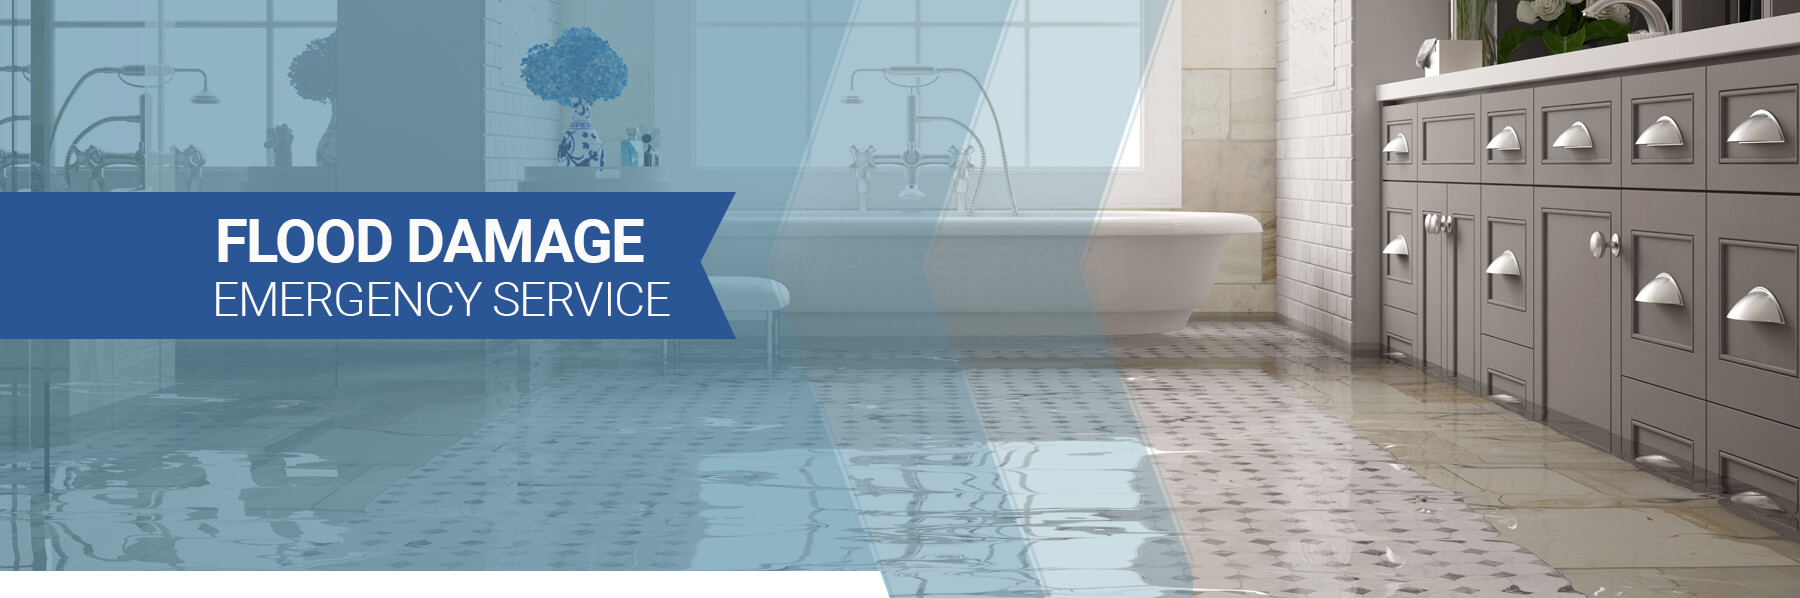 Jw Home Care Water Fire And Mold Damage Restoration